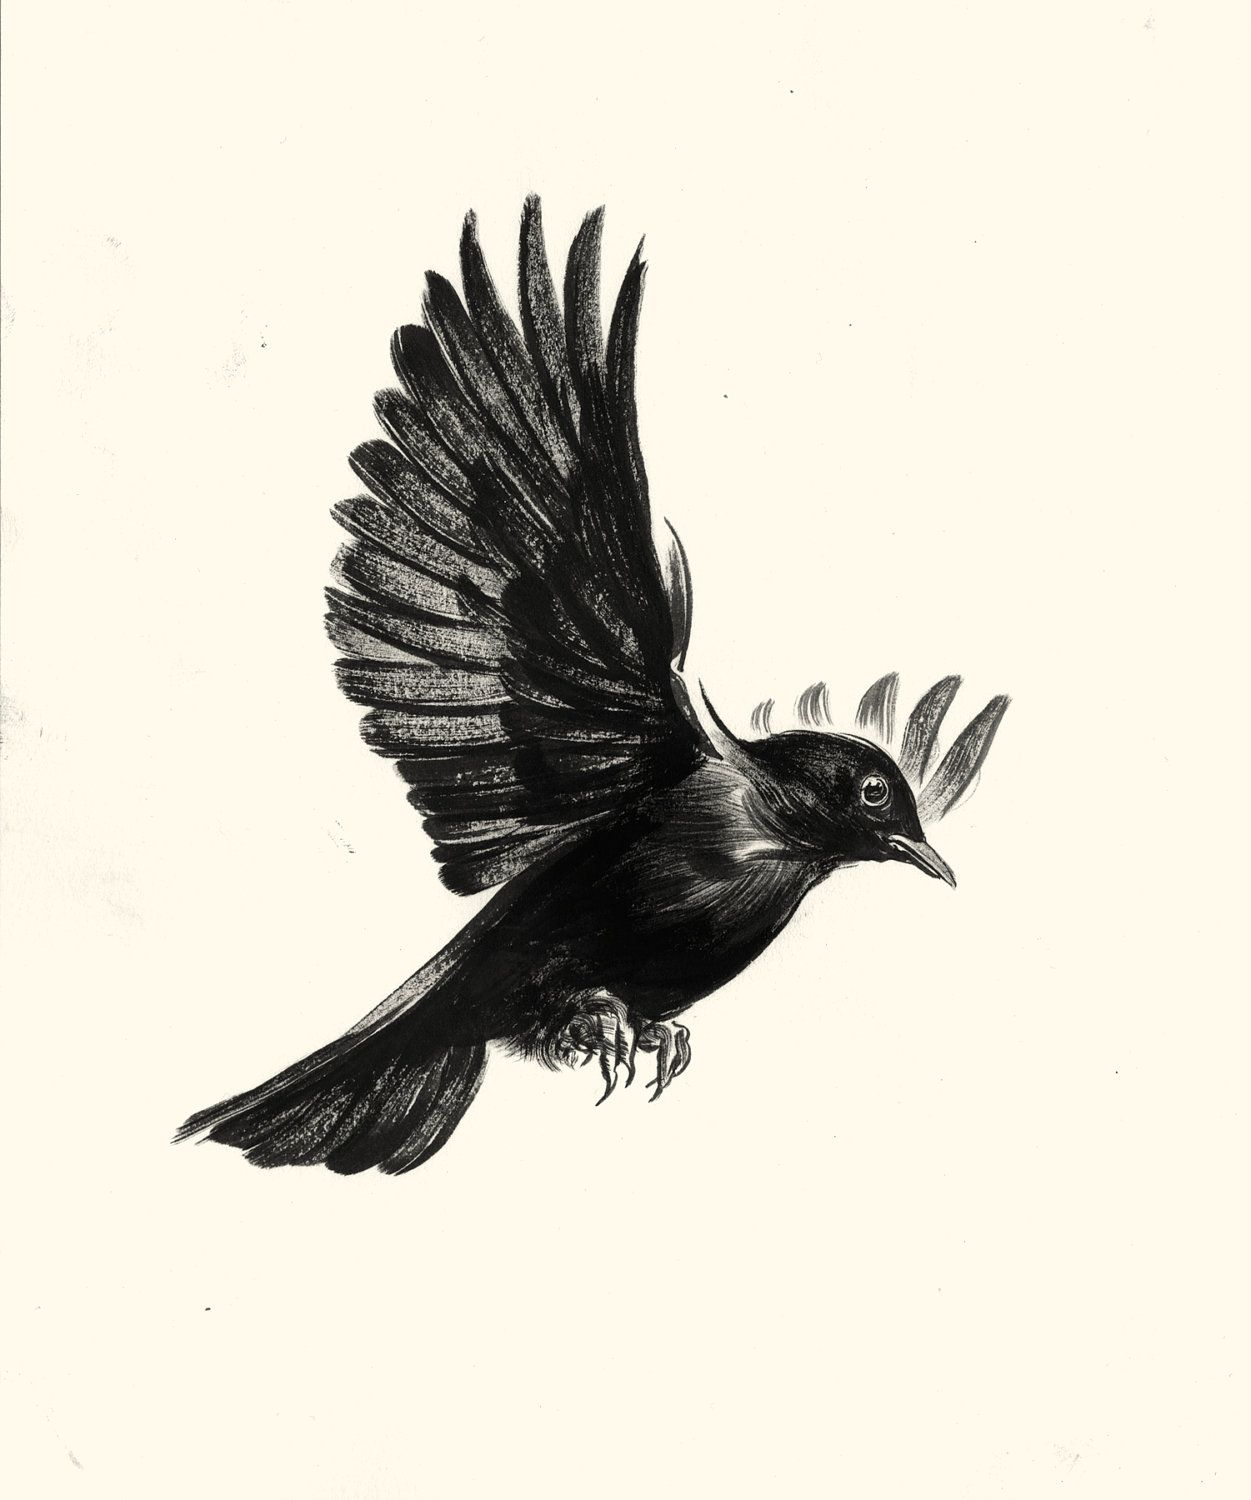 c320a496264fd Blackbird of Harkers Drop | Bird tattoo | Black bird tattoo, Birds ...